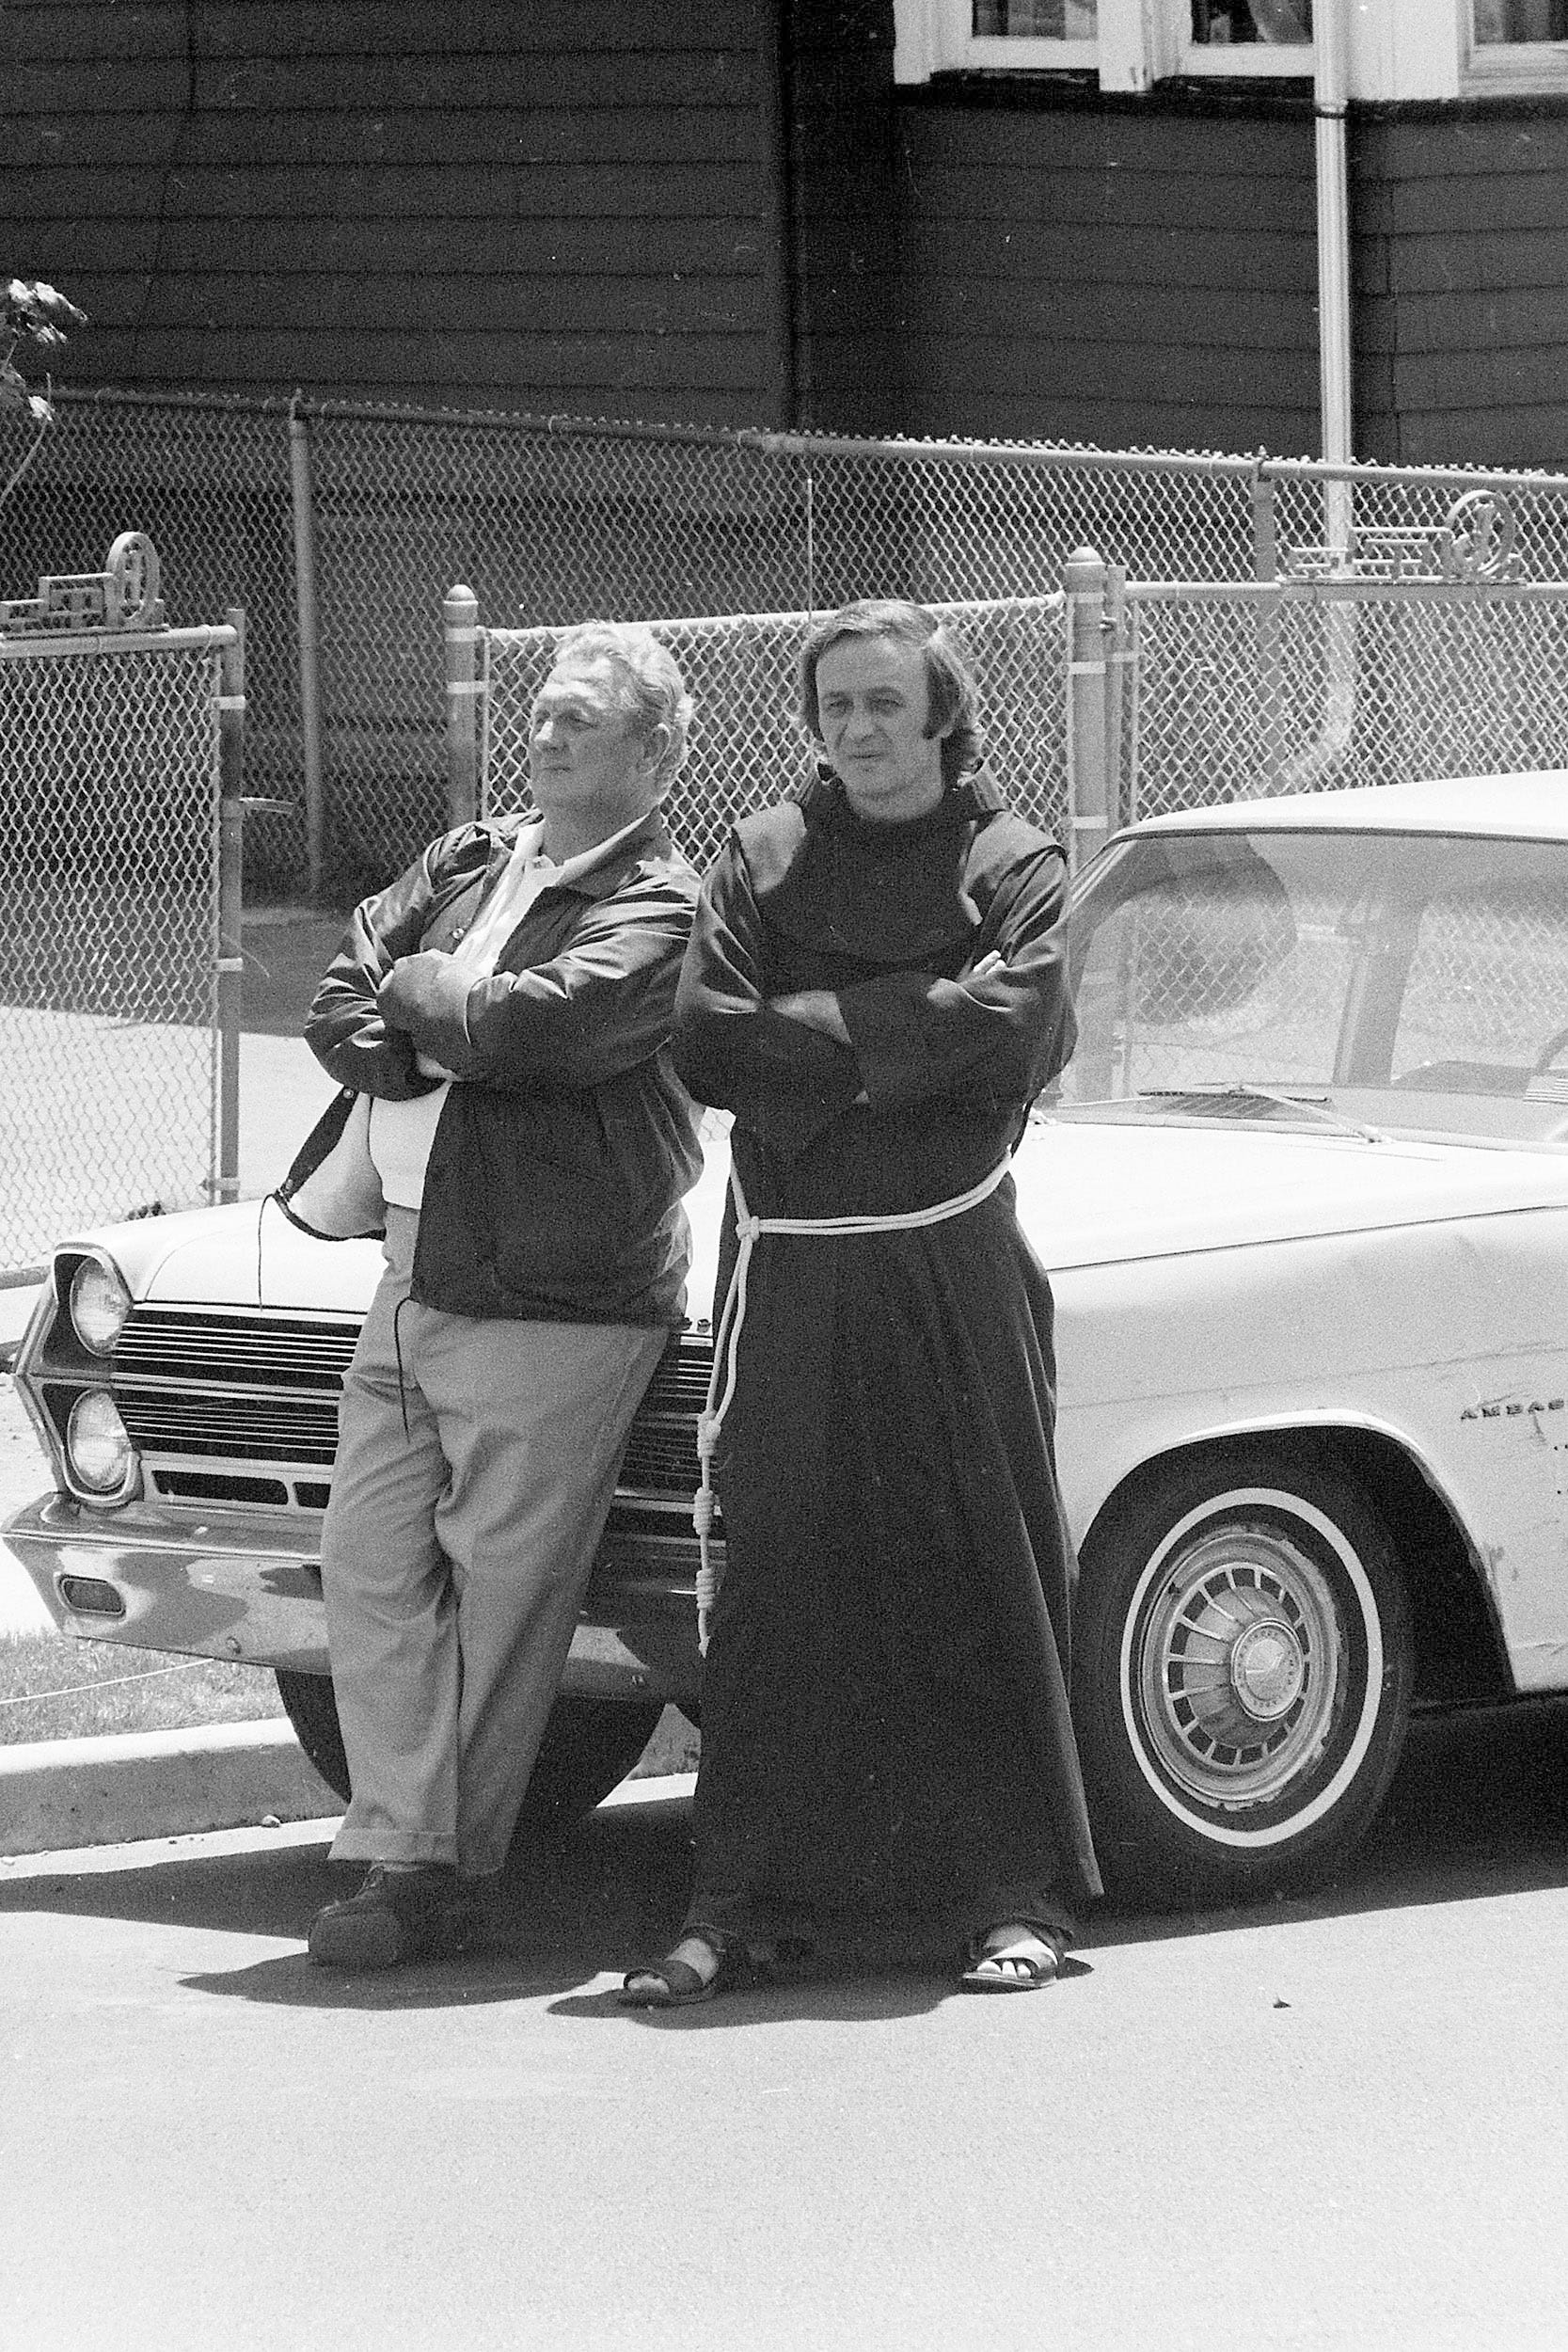 Judge Fred C. Galda and Father Mychal Judge wait between negotiations during a police standoff with James G. Hyams who was holding his wife and their three children hostage in his wife's home with a shotgun and two handguns in Carlstadt, N.J., on May 19, 1974. During the all-day seige, Hyams had fired three shots and police fired one. No one was injured.